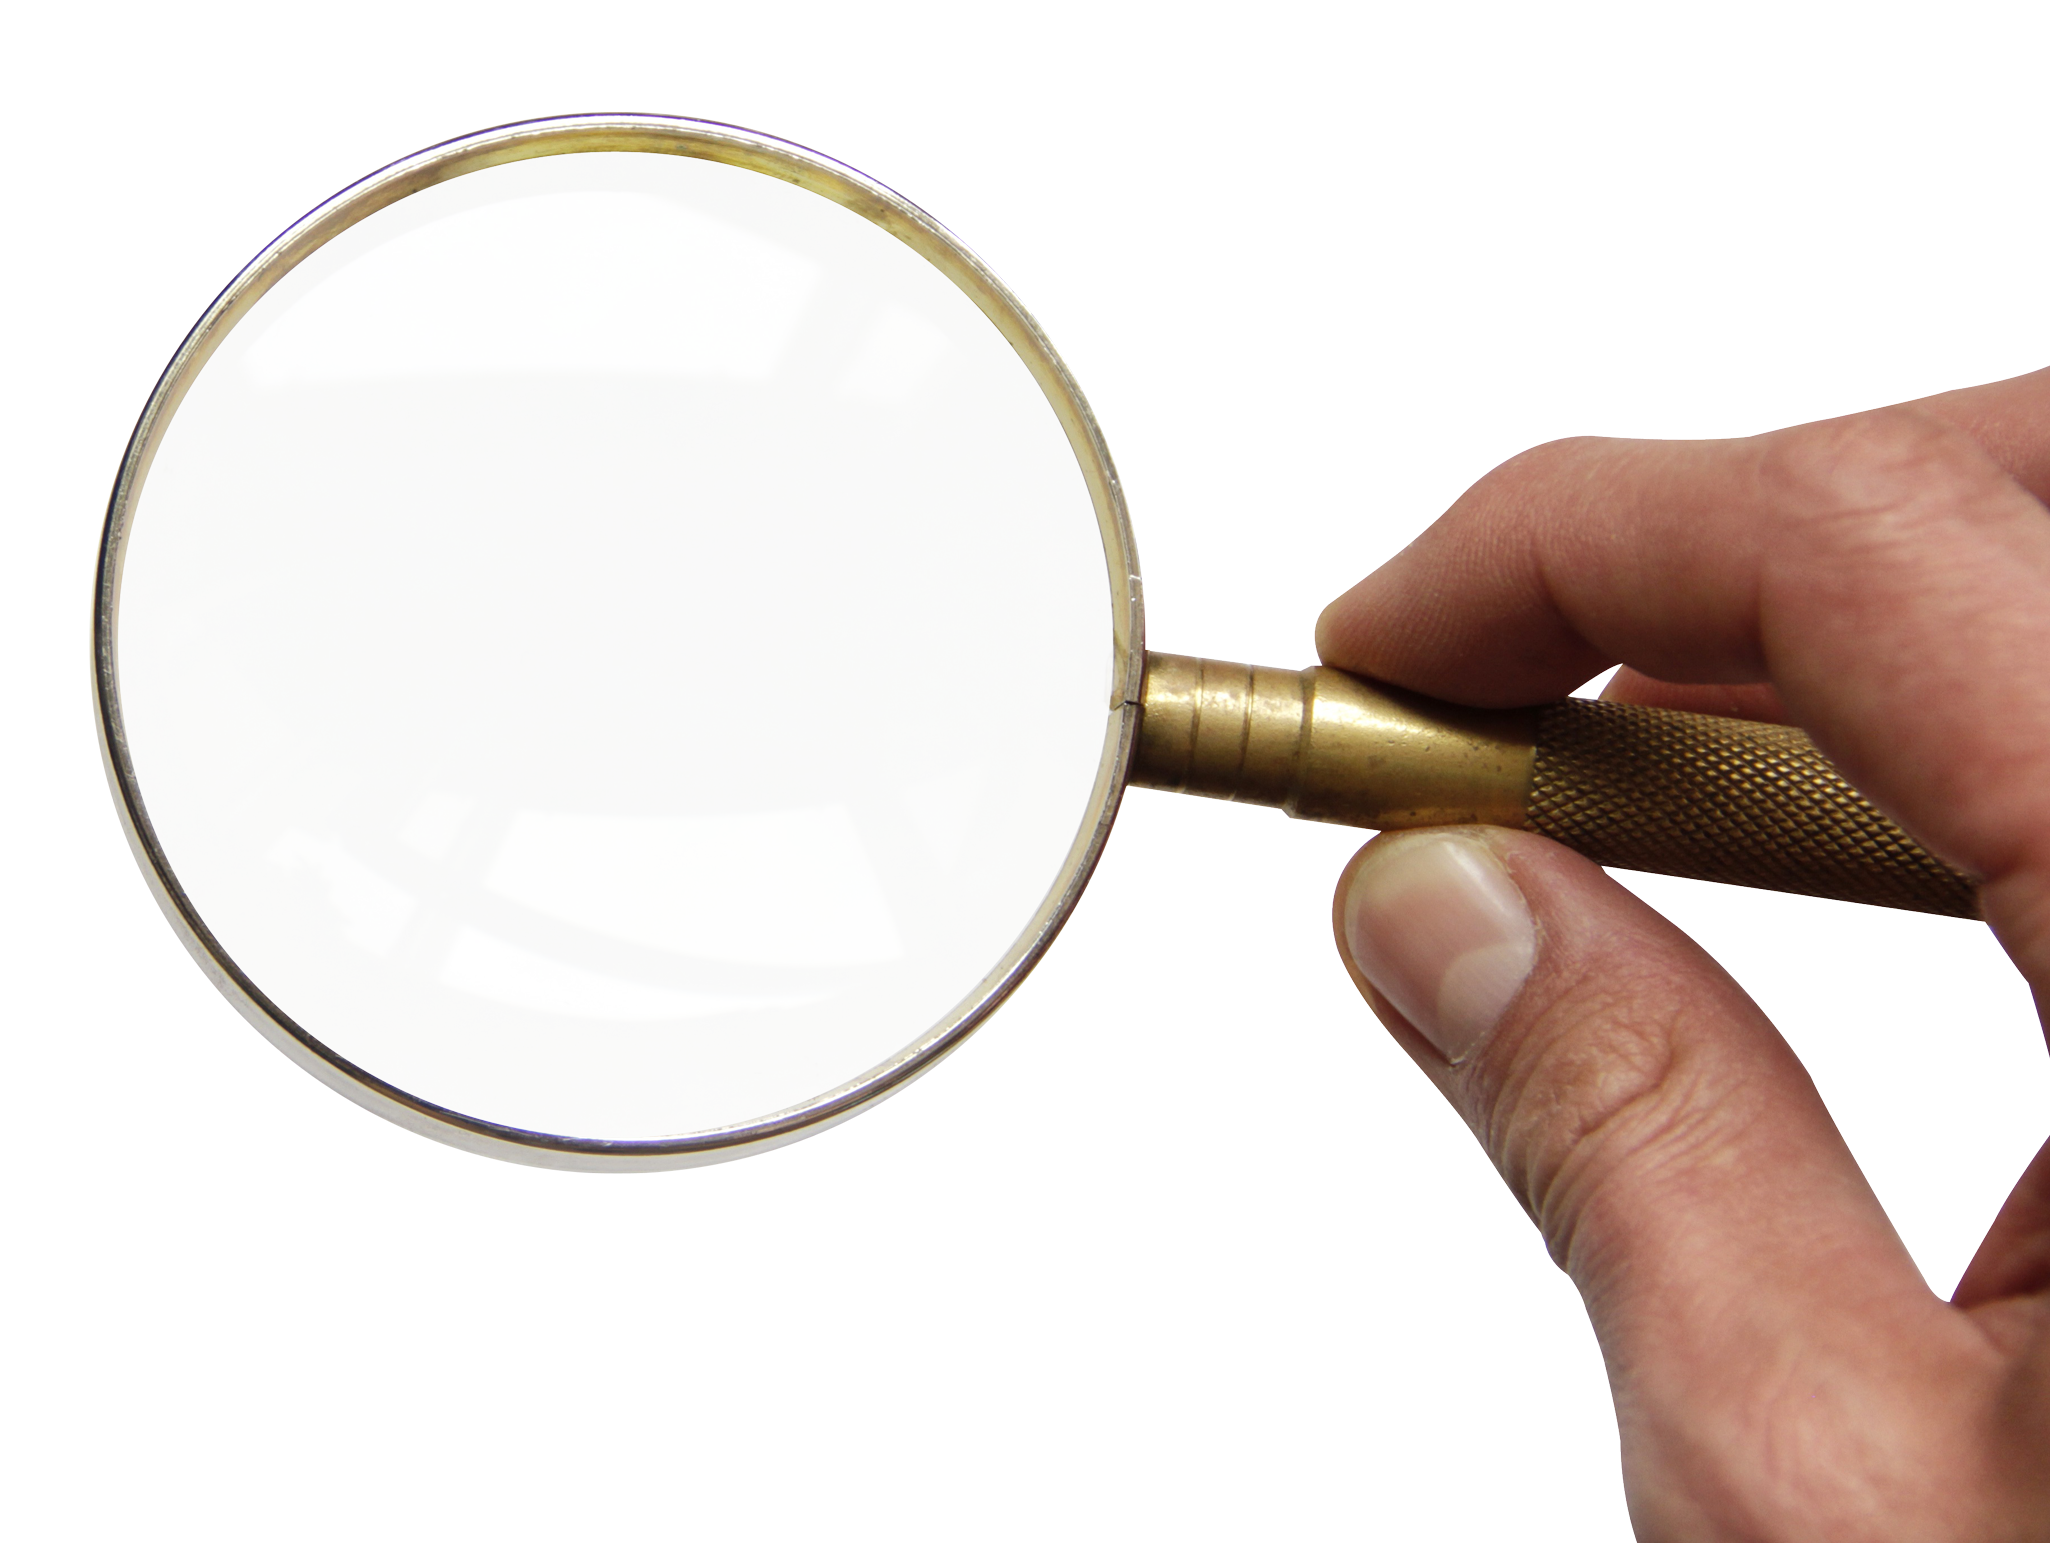 Magnifying Glass Png Image Glass Magnifying Glass Magnifier